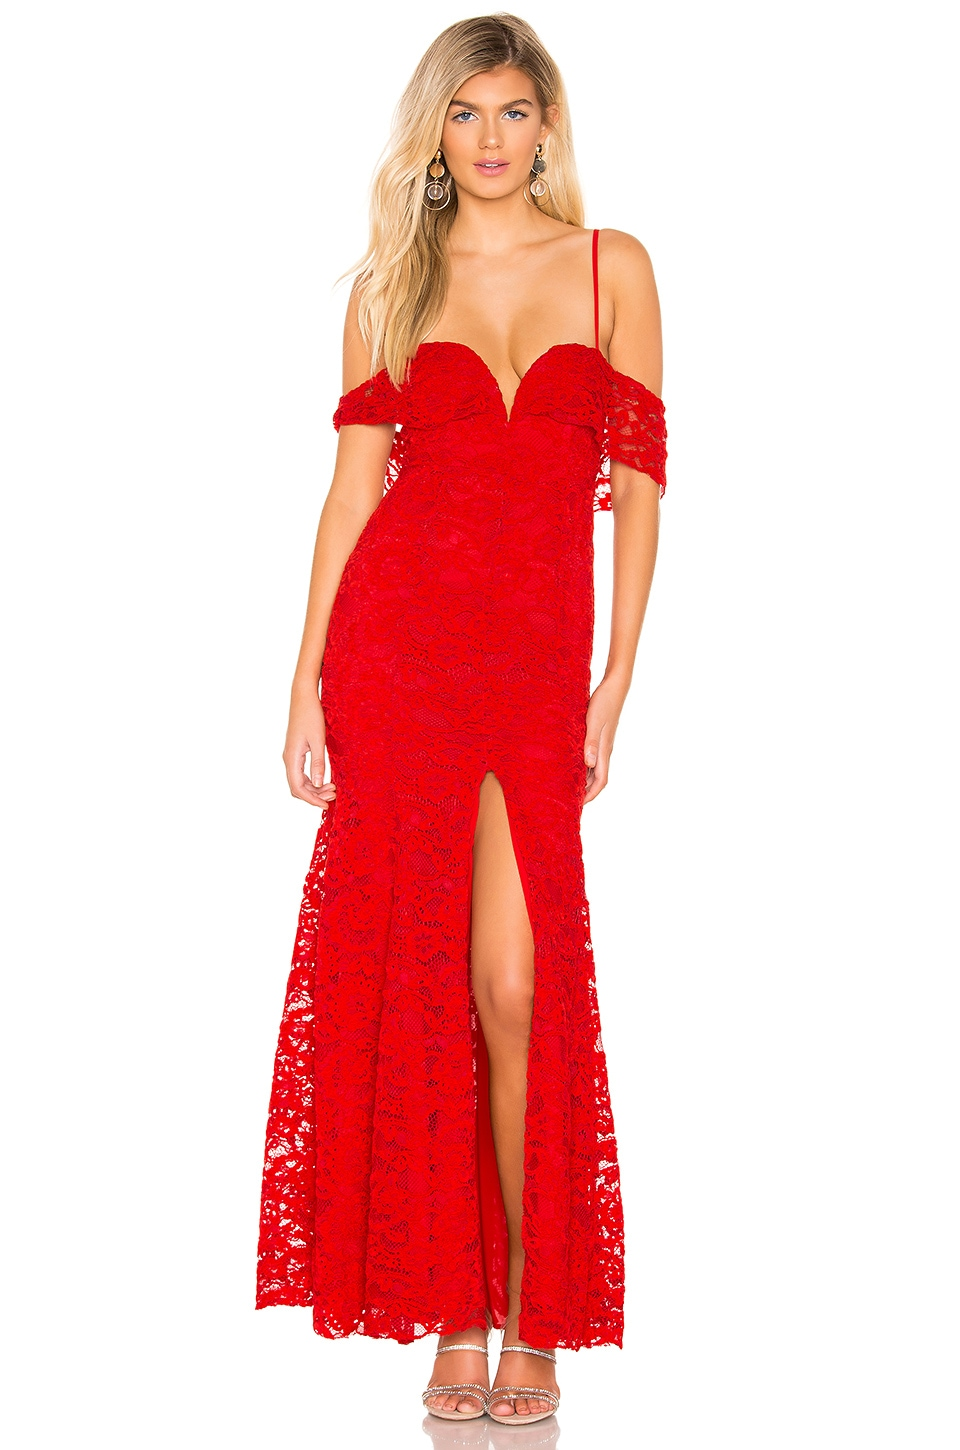 MAJORELLE Angelique Gown in Racing Red